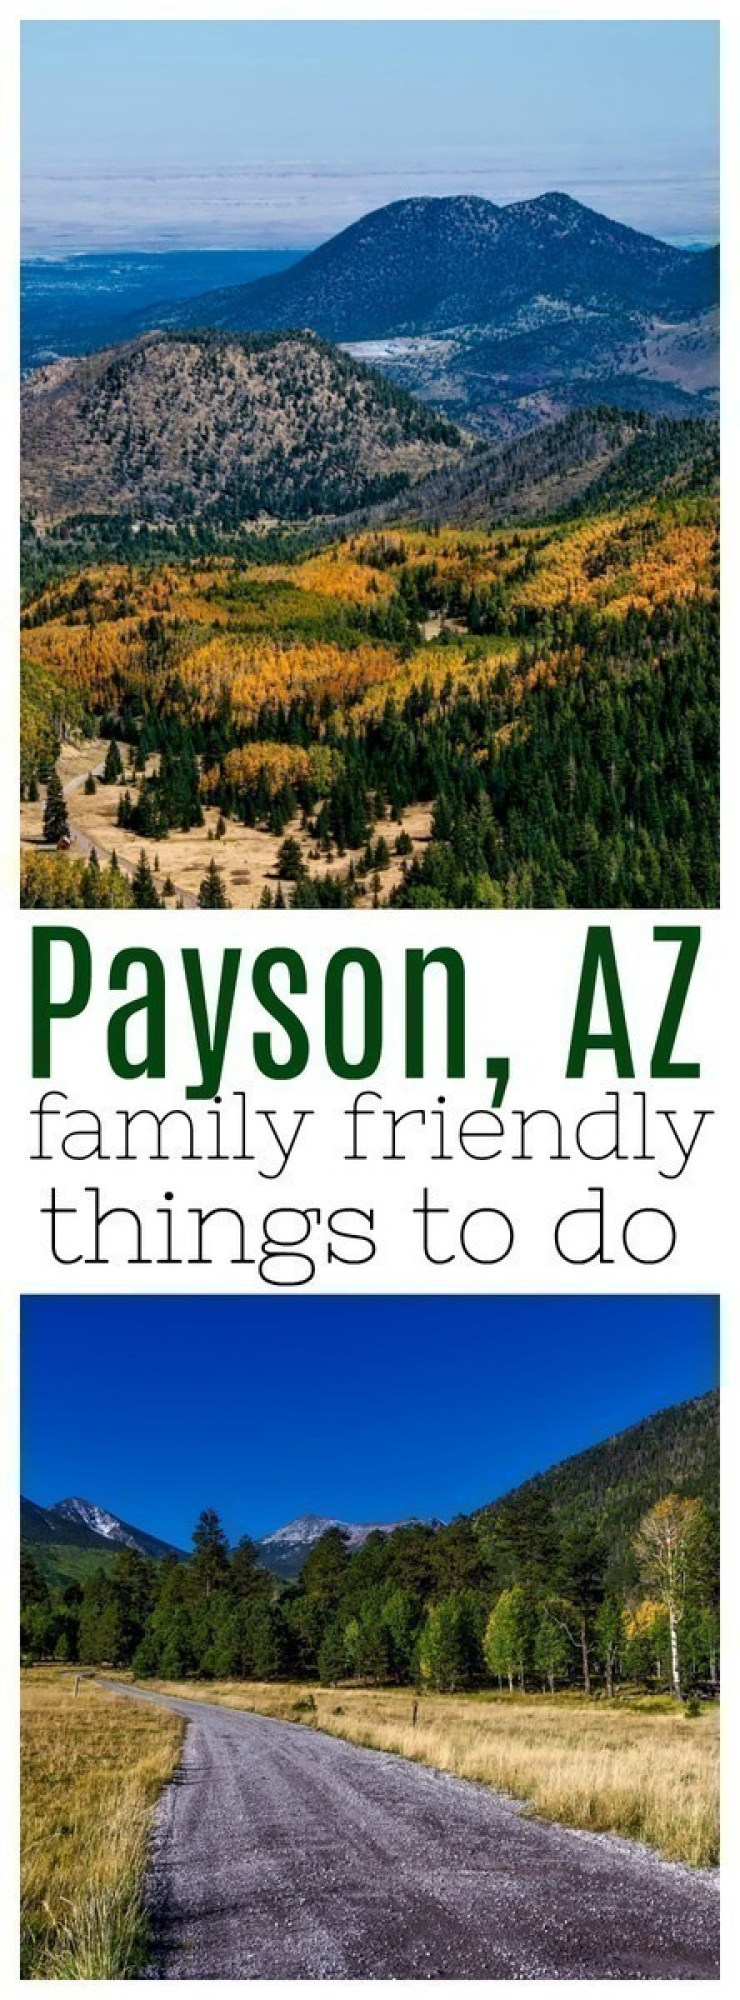 Looking to get out of the heat? Here are over 10 family friendly things to do in Payson!